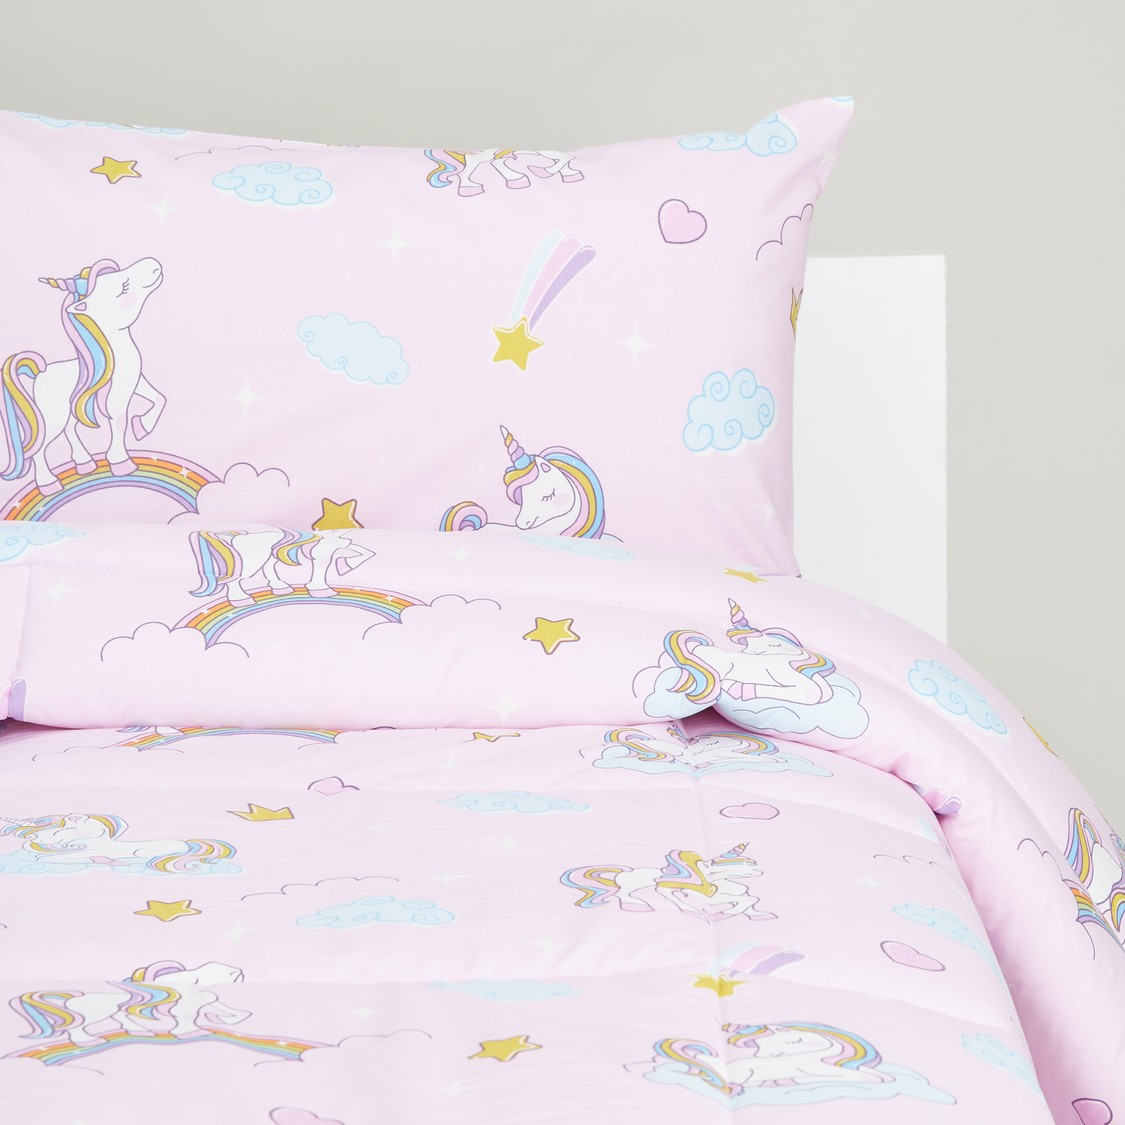 Unicorn Print 2-Piece Comforter Set - 220x160 cms